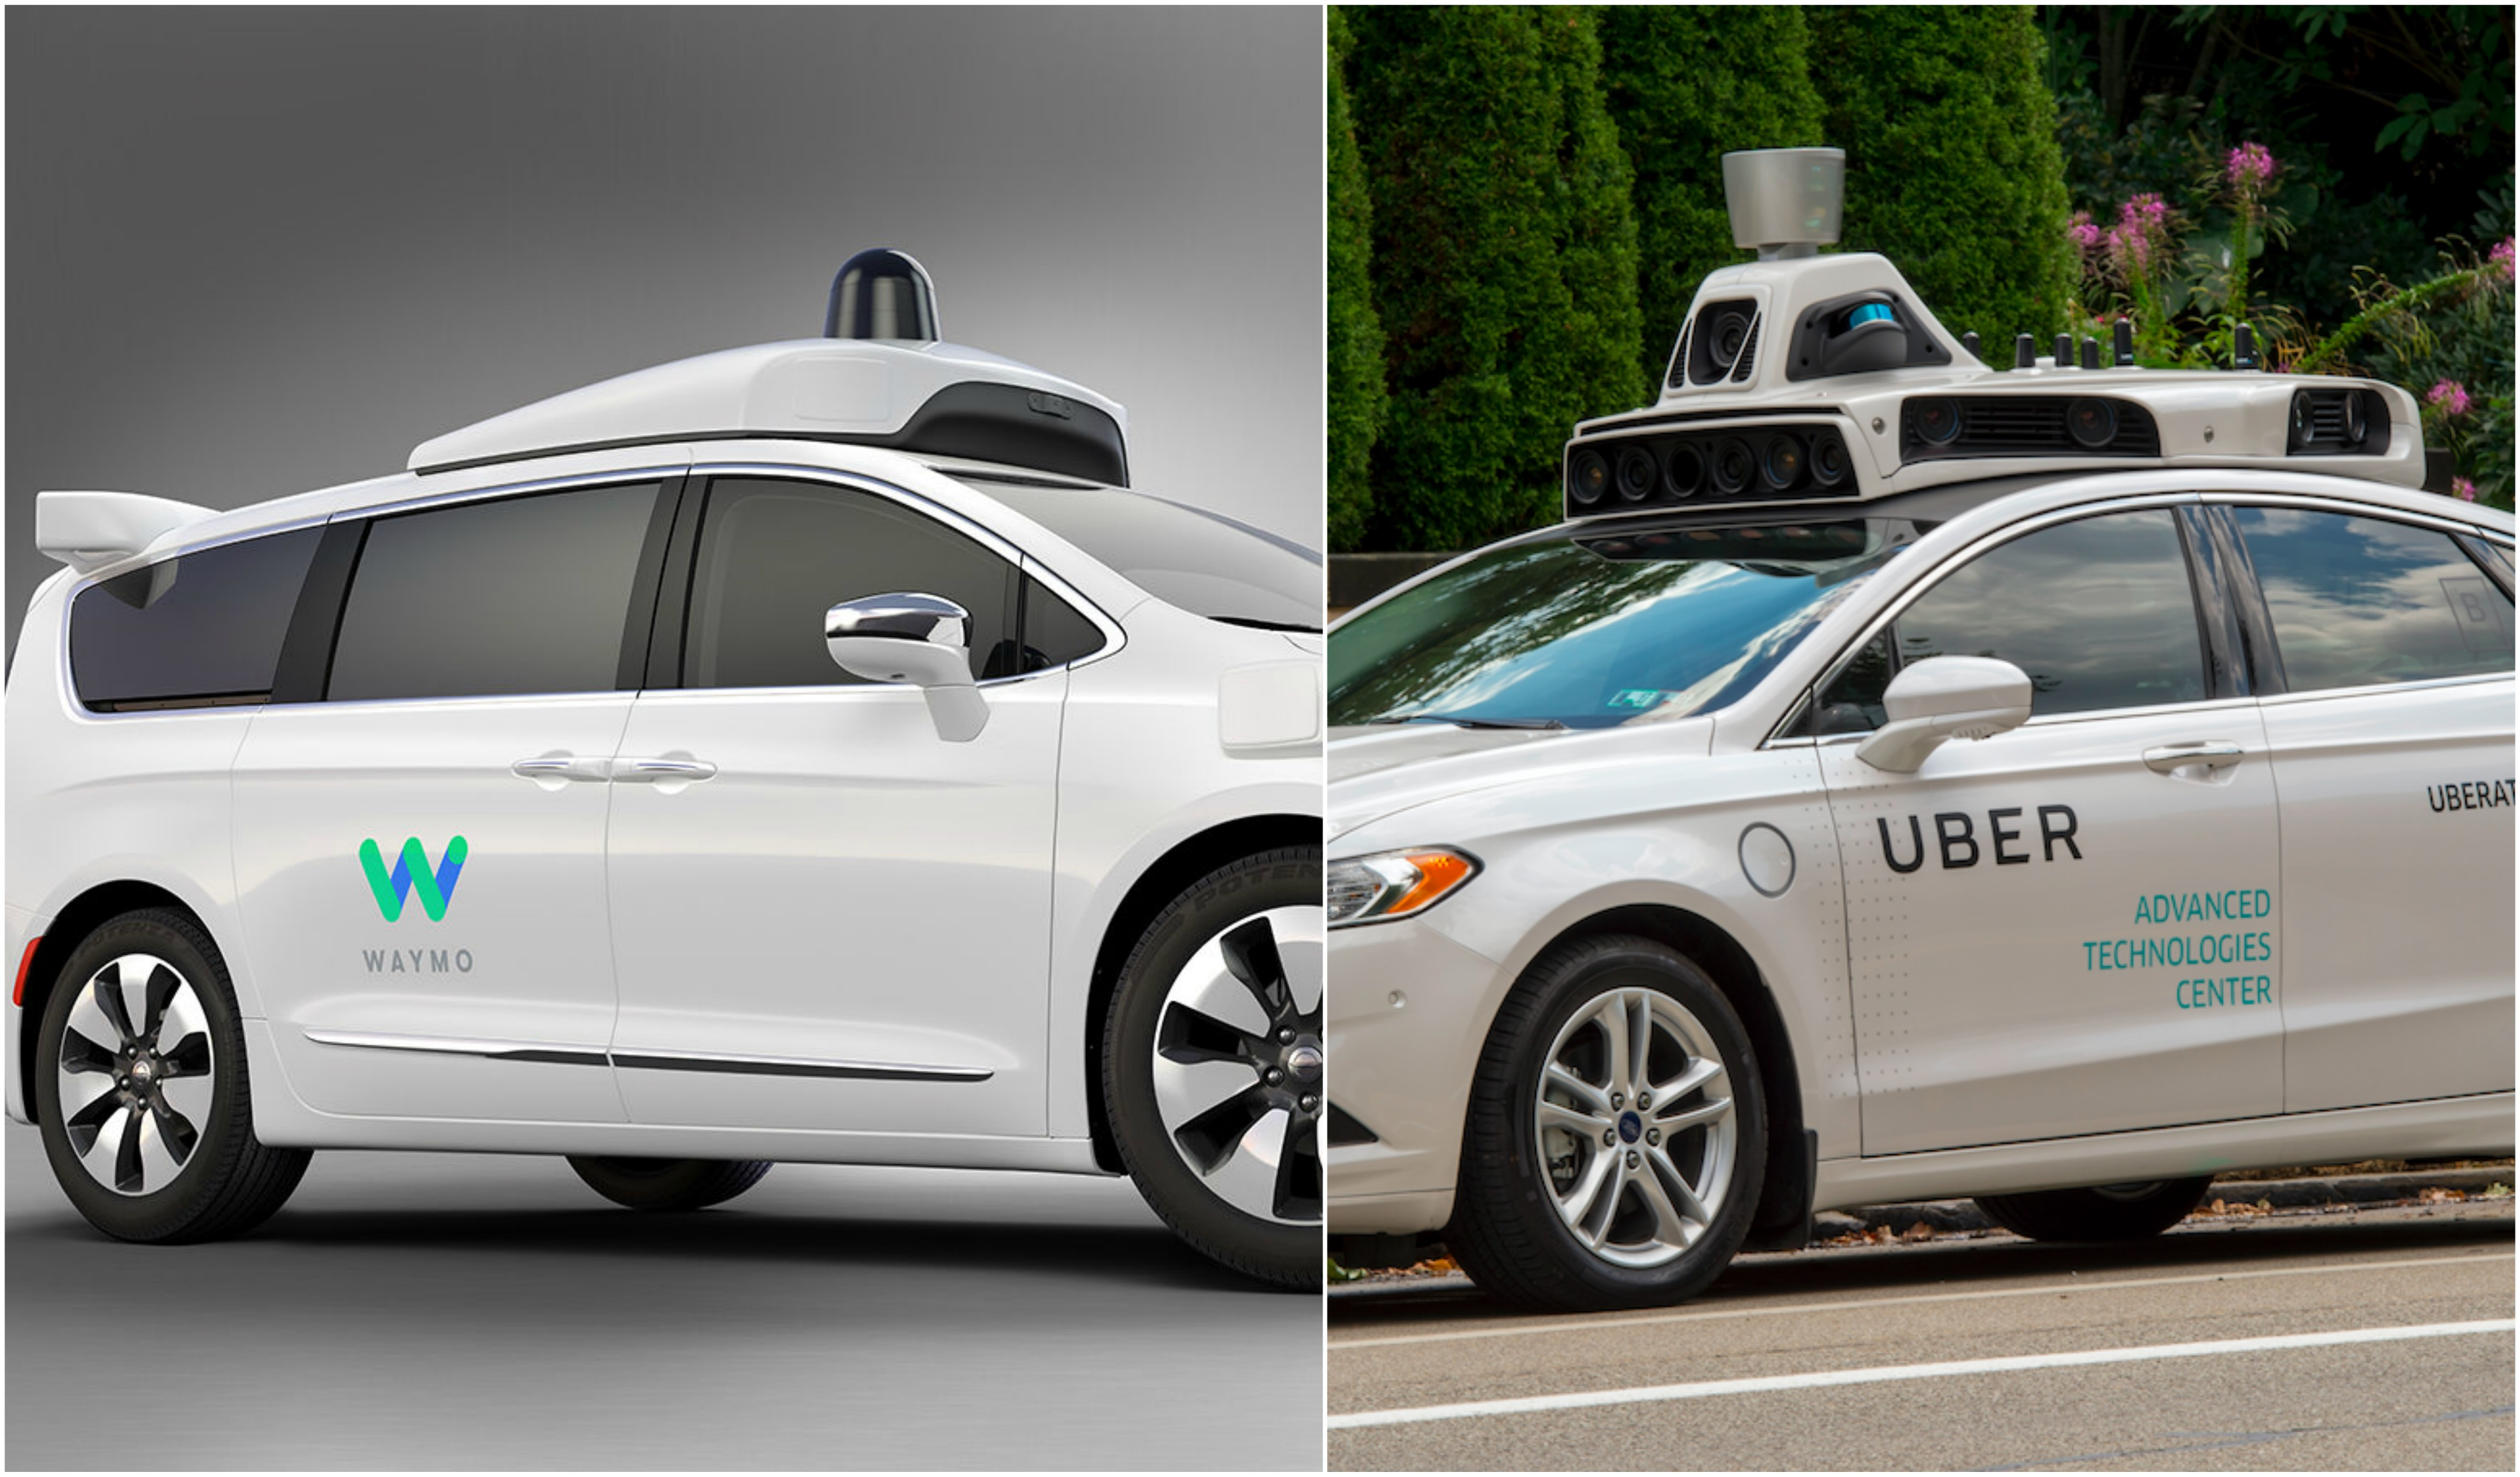 What technology does uber use - What Kind Of Cars Does Uber Use What Kind Of Cars Does Uber Use